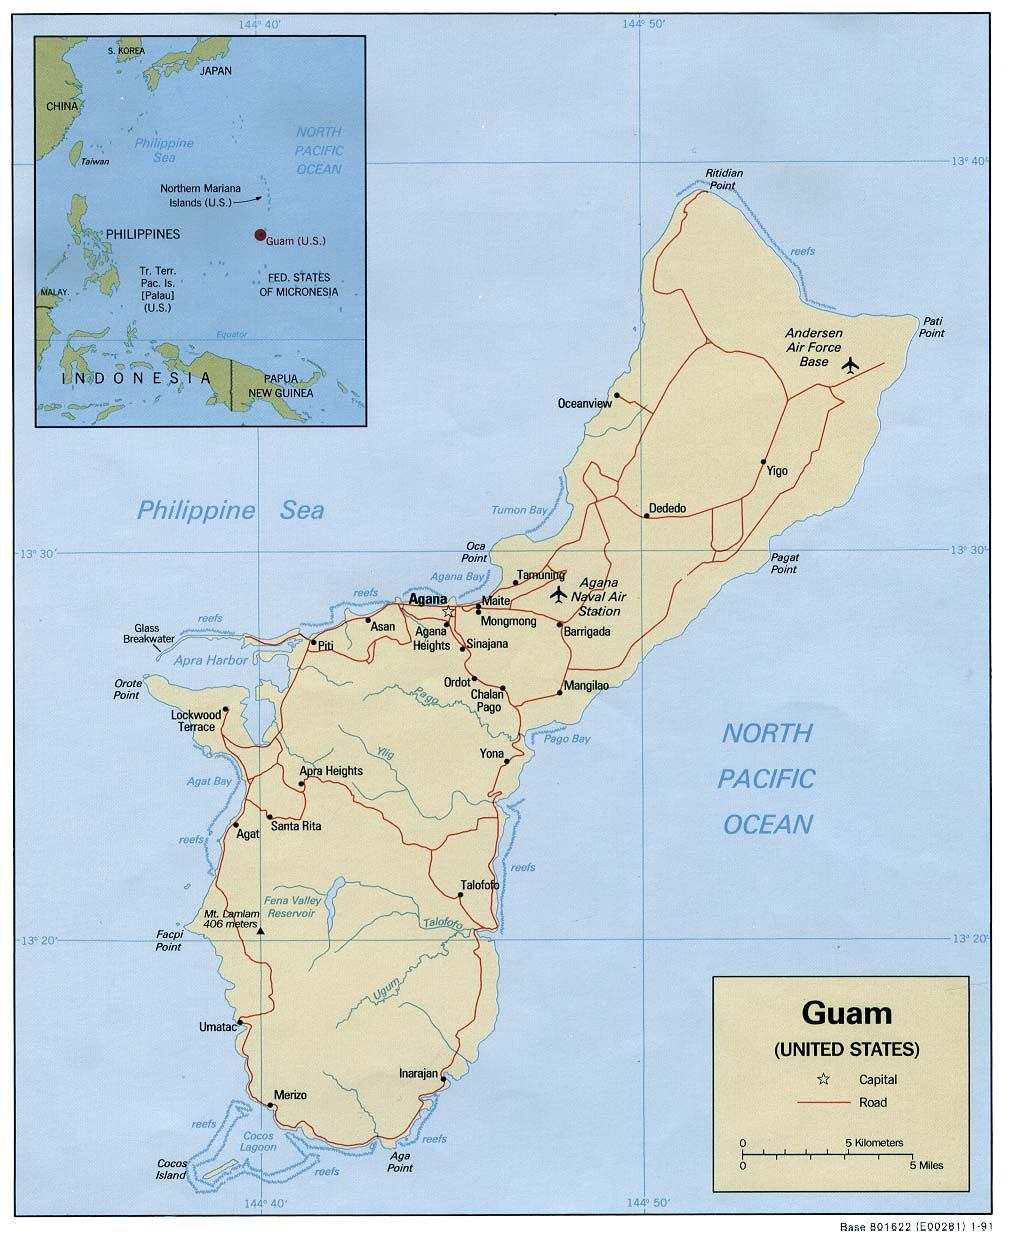 Map of Guåhan - Guam (Political), 1991. Courtesy of, The World Factbook (http://cia.gov/cia/